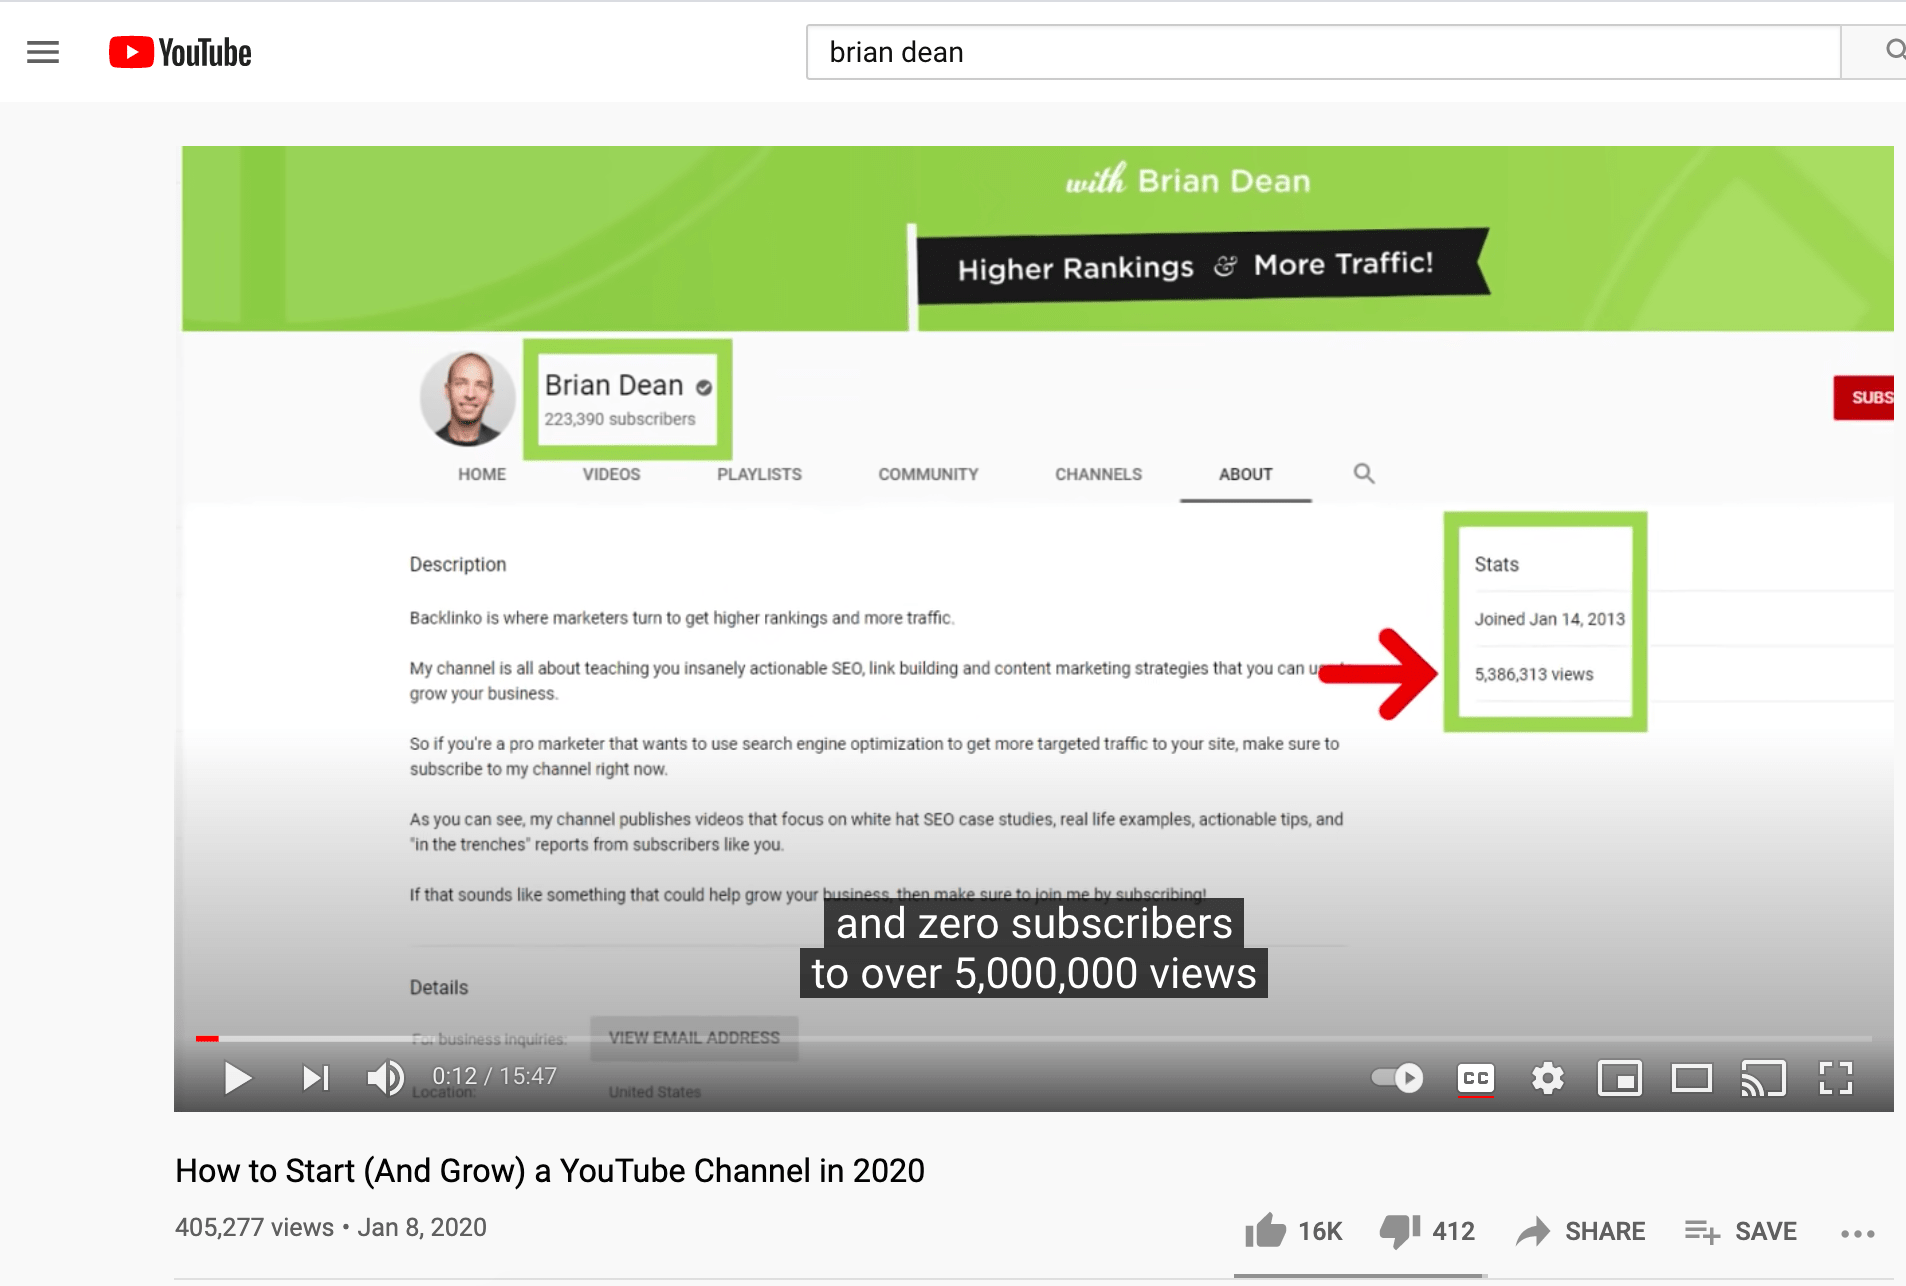 Brian Dean's video on growing a YouTube channel.